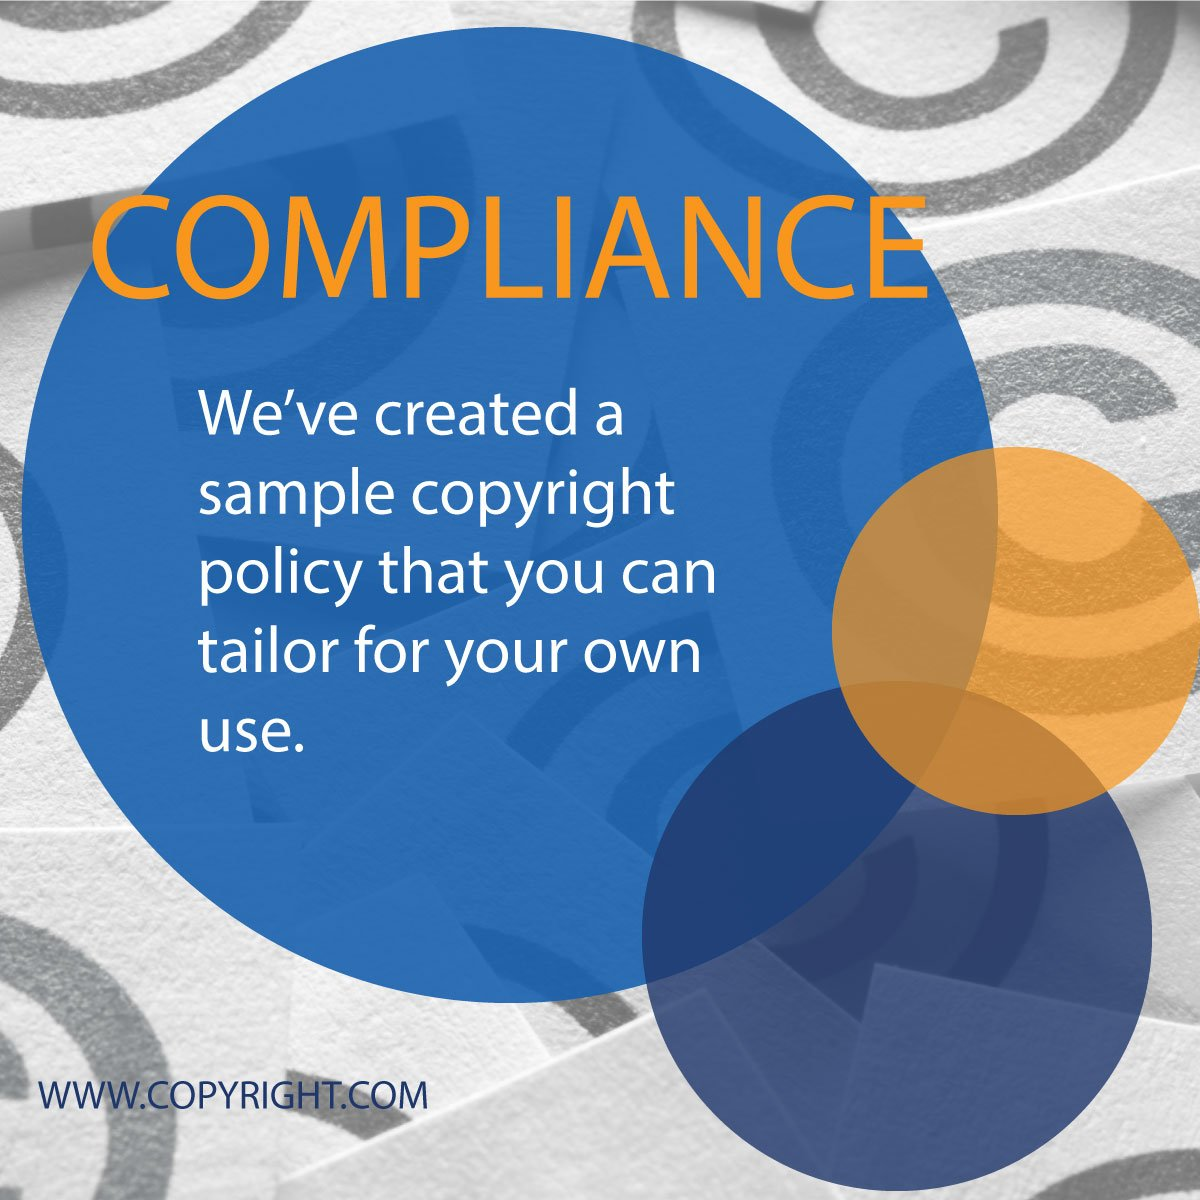 test Twitter Media - If your organization aims to comply with #copyright law, we have developed guidelines for drafting and implementing a copyright #compliance policy for your organization. https://t.co/ZwTZKxrmsE https://t.co/AjuoX1Qz3W